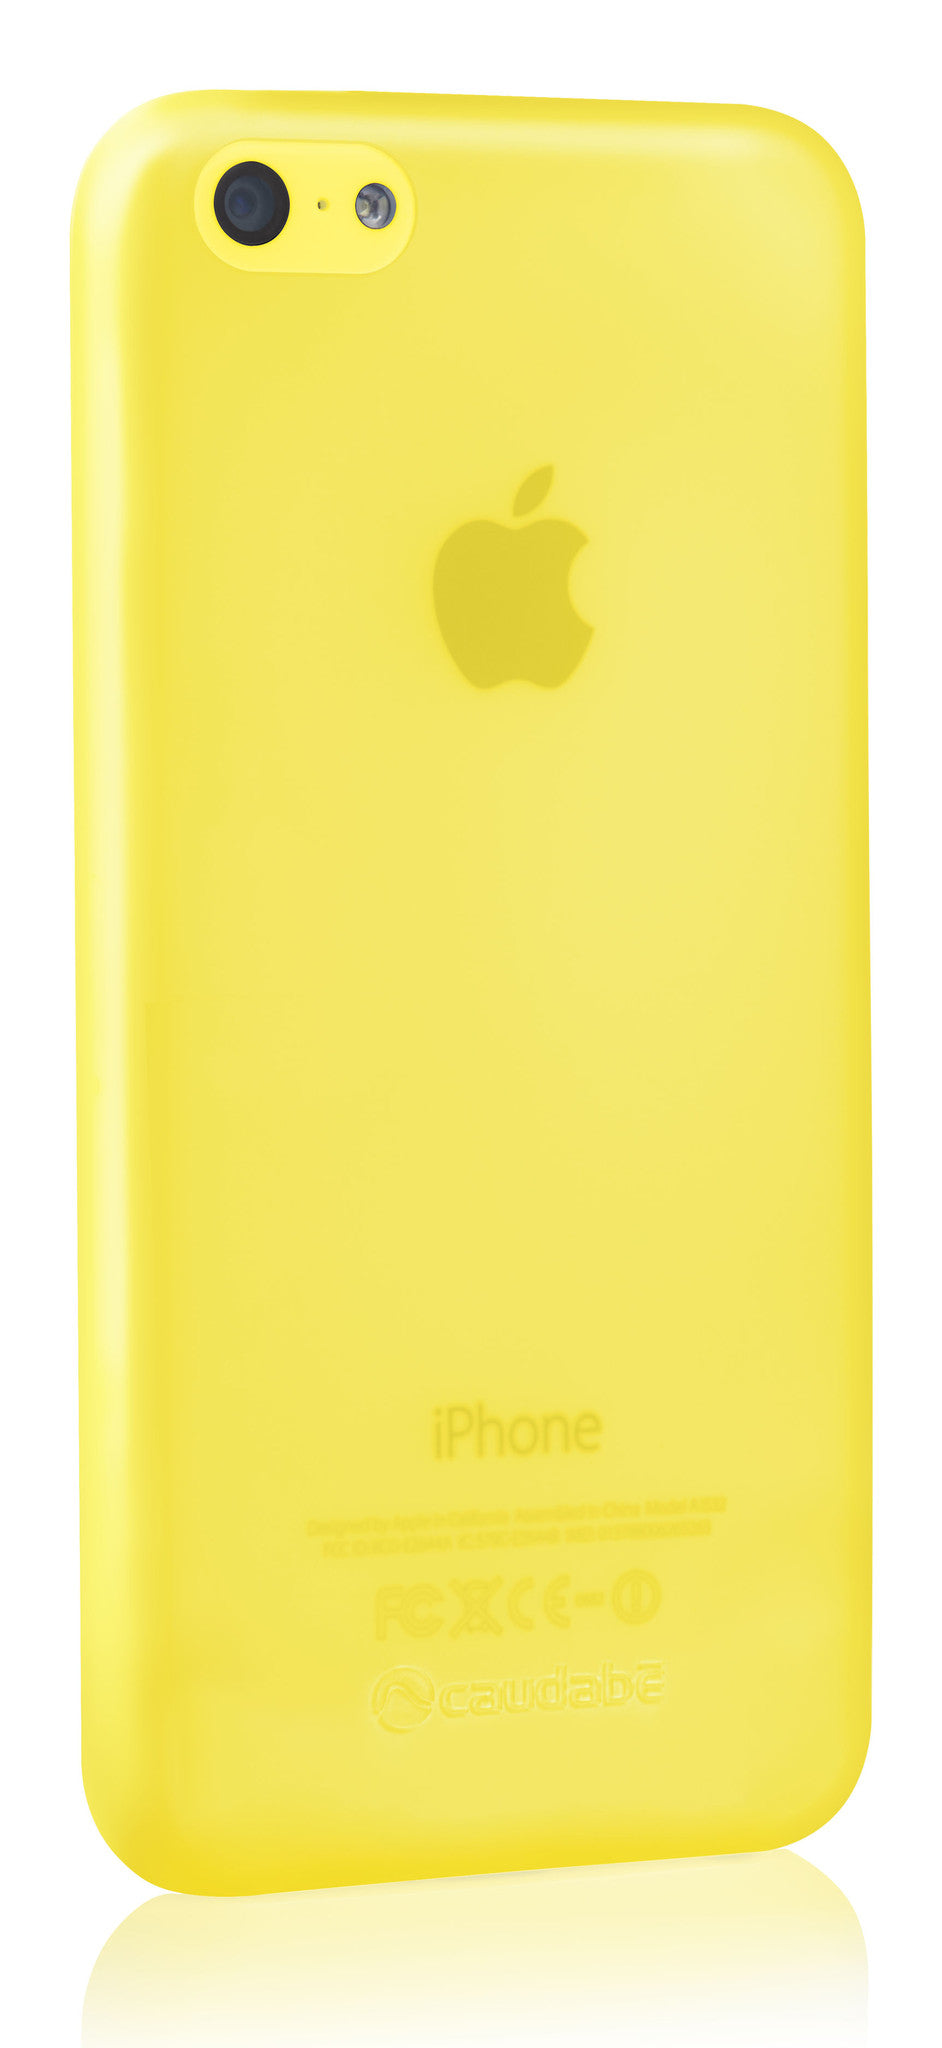 The Veil - iPhone 5C — Yellow